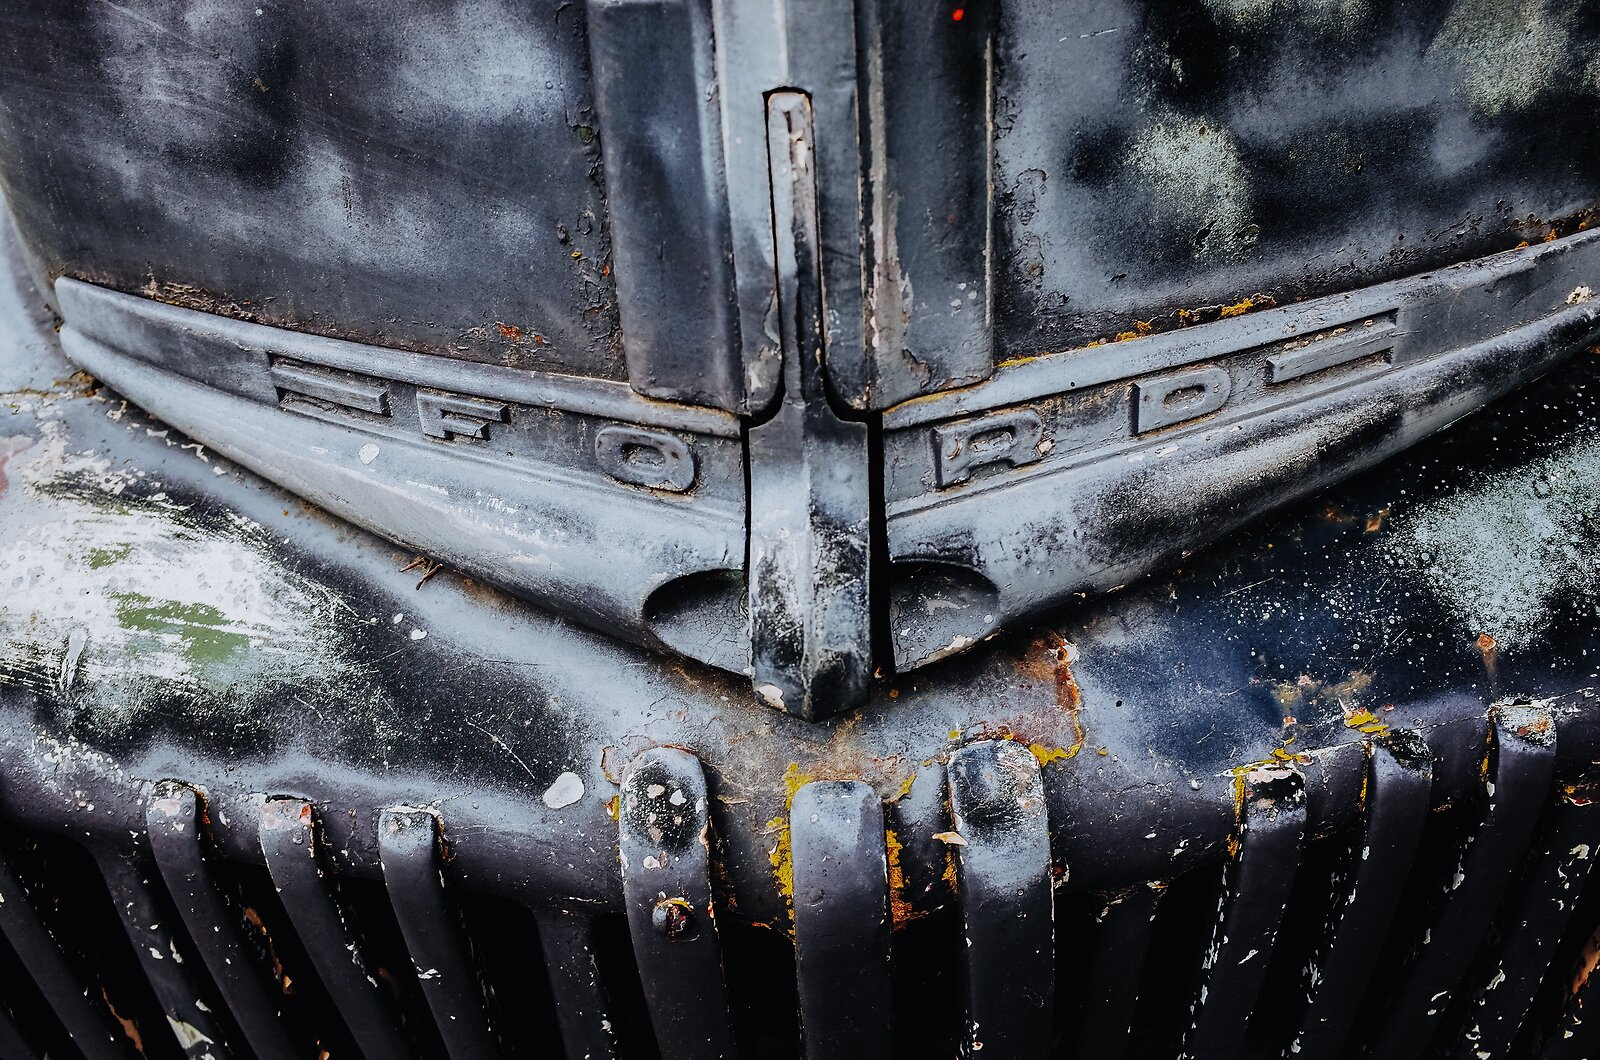 GRII_May5_Ancient_Ford_pickup_Grill.jpg